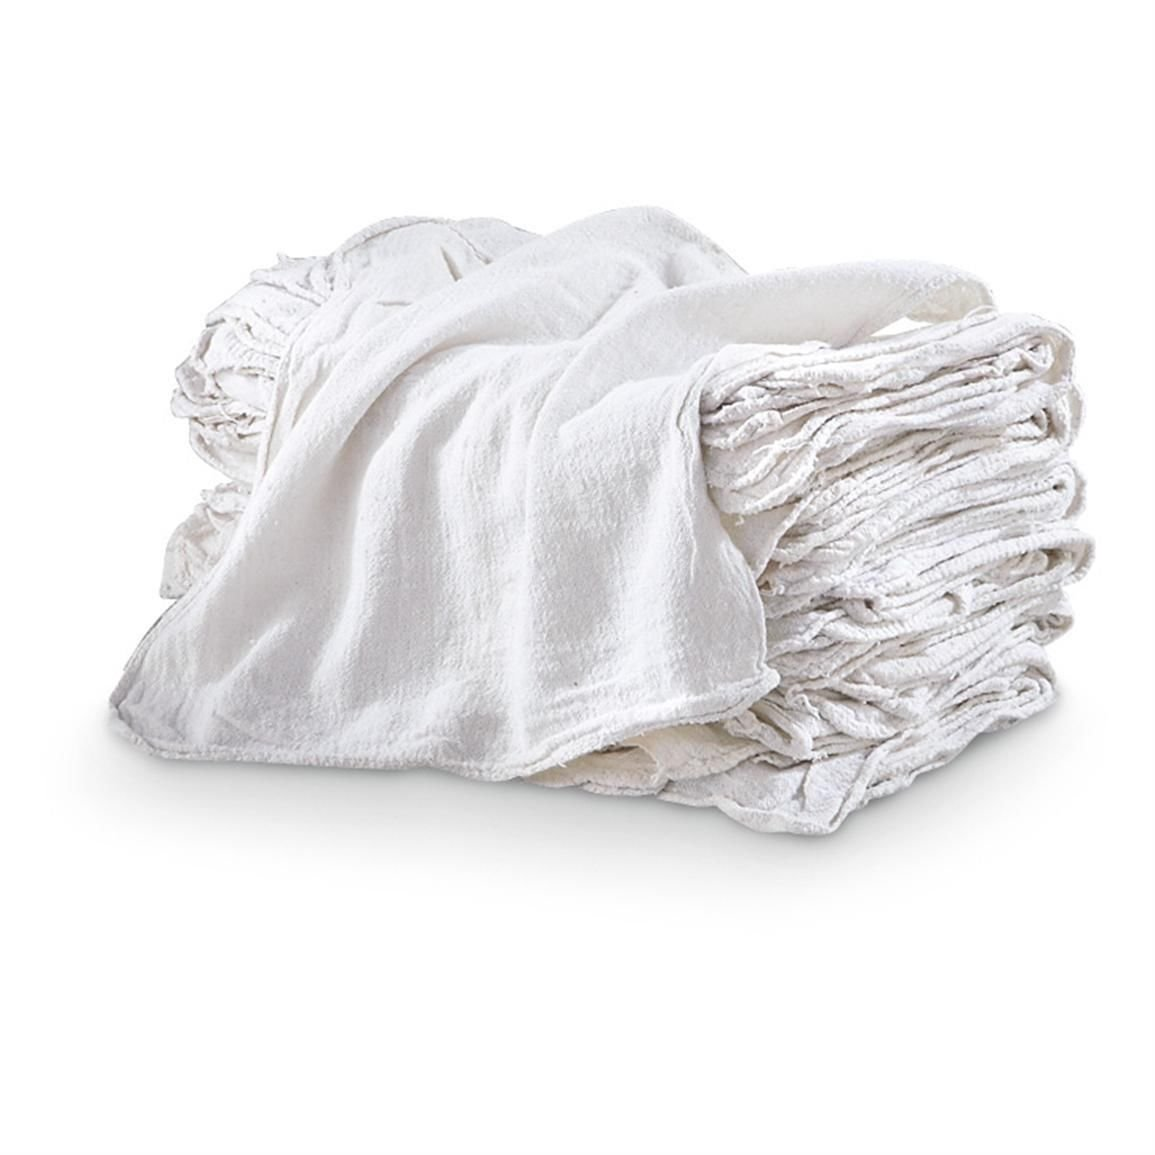 Auto Shop & Wash Towels - Pack of 100 - 100% PURE WHITE COTTON - LARGE 14'' x 14'' Commercial Grade - Can be Used for Drying, Cleaning, Washing, Oil Changes, Engine Cleaning and More! Absorbent Cotton